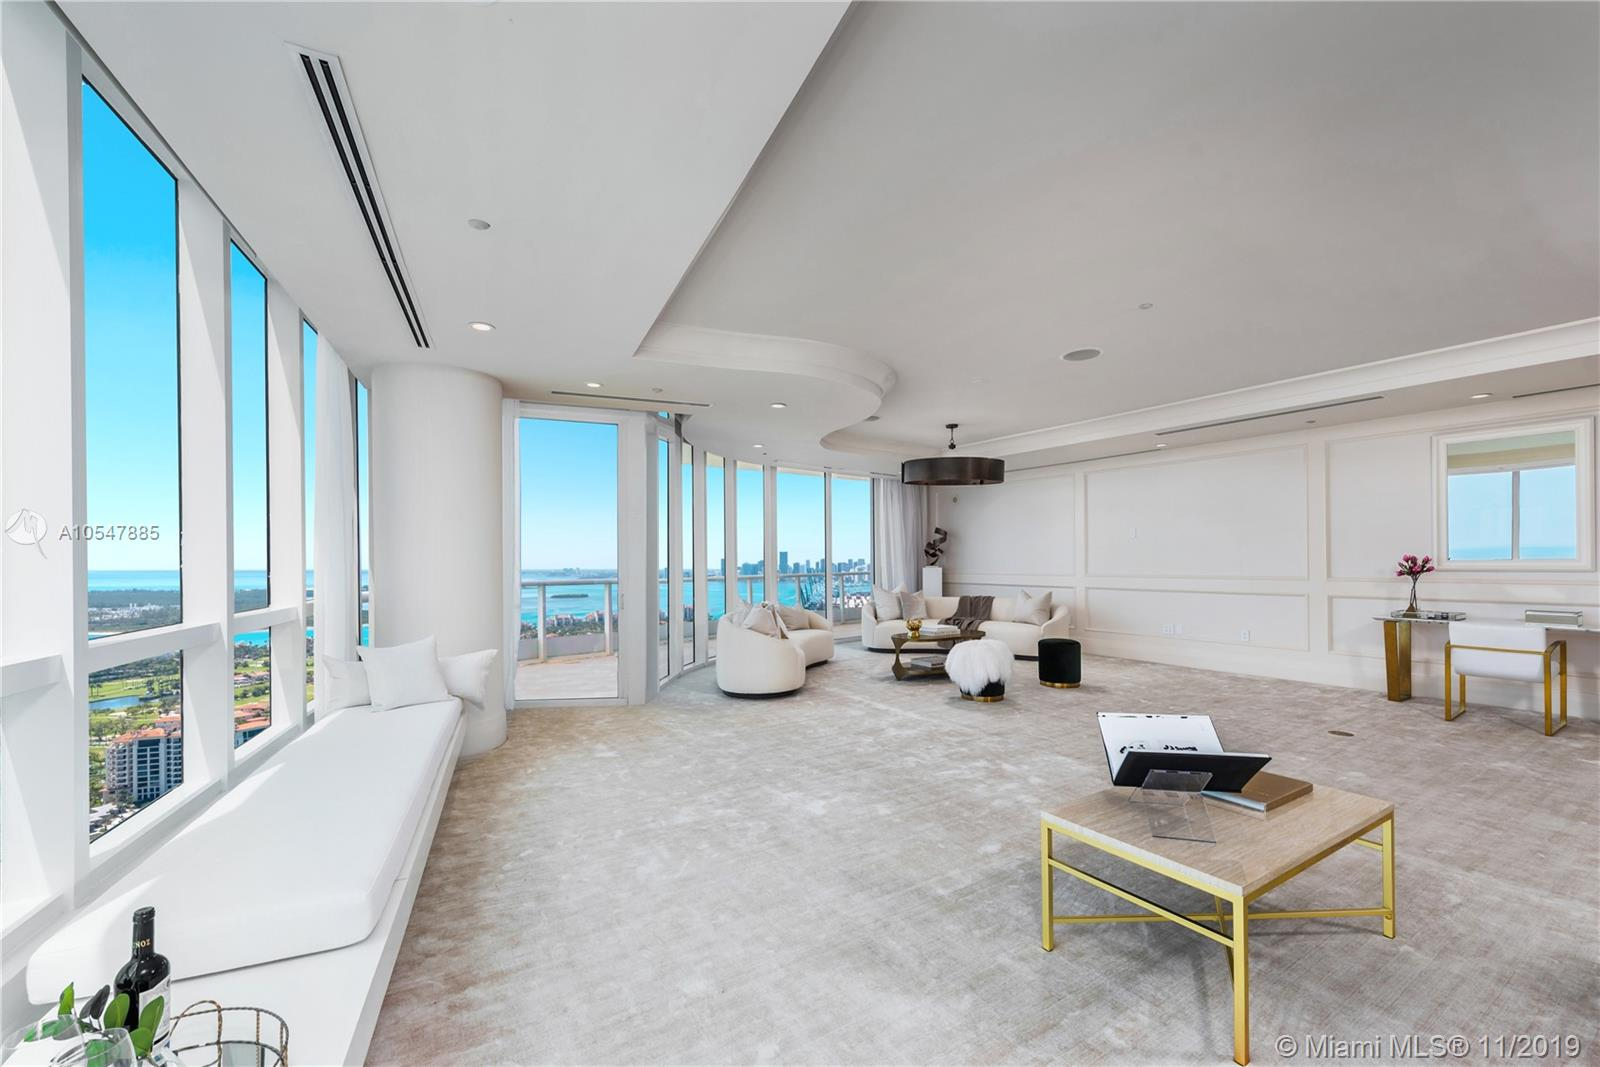 100 Pointe drive-PH2 miami-beach-fl-33139-a10547885-Pic07